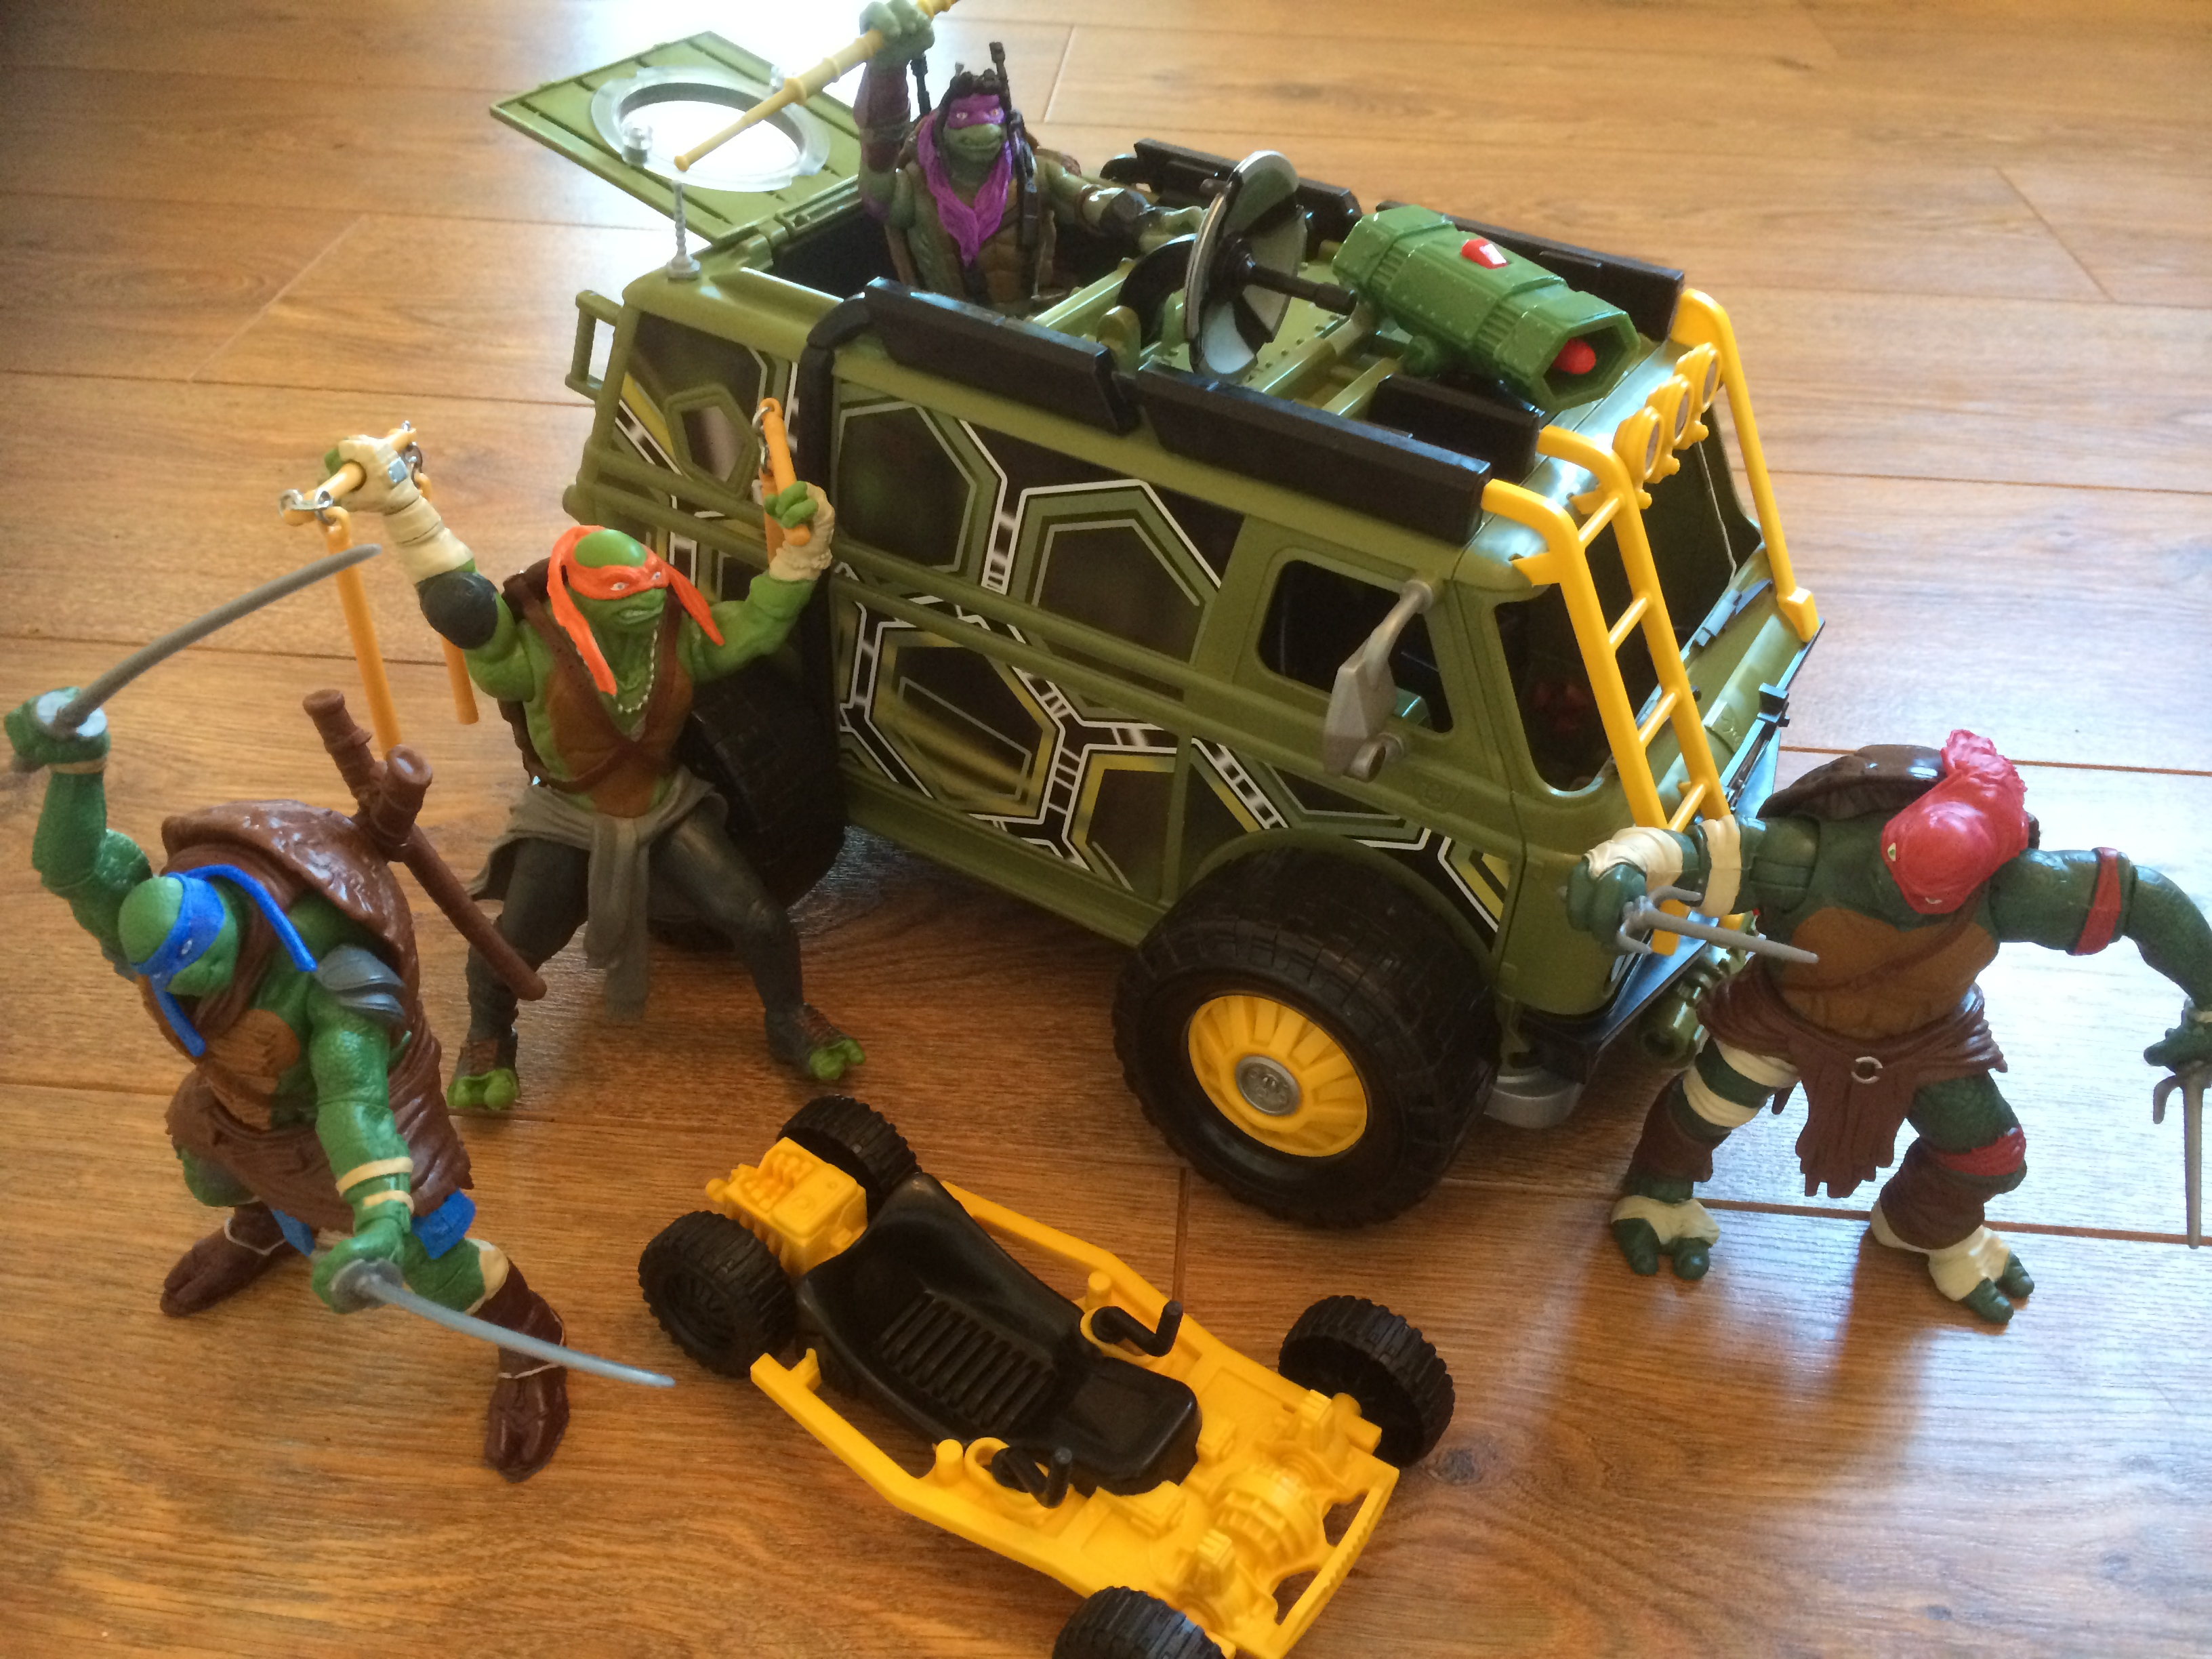 Ninja Turtles Toys : Ninja turtles the movie figures and vehicles